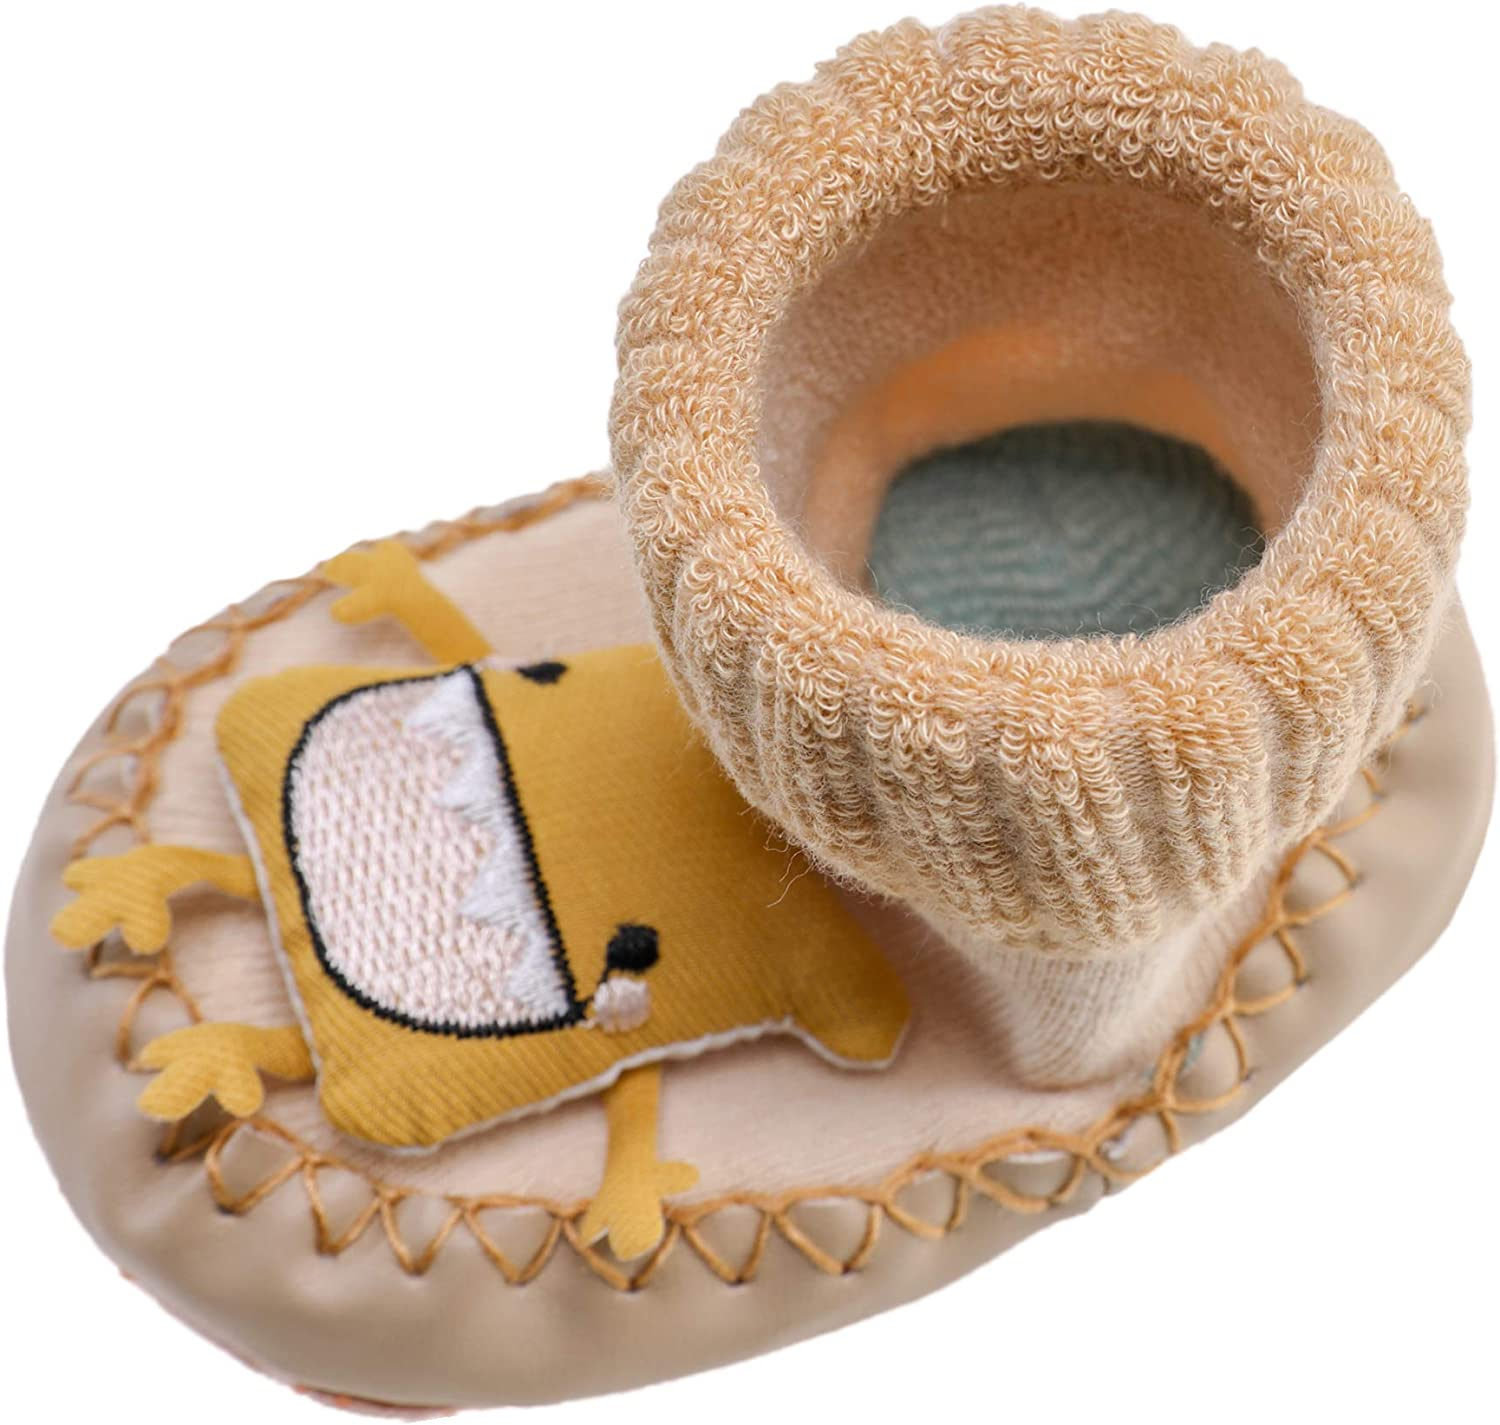 Baby Boy Girls Toddlers Cartoon Animal Moccasins Non-Skid Indoor Slipper Winter Warm Shoes Socks